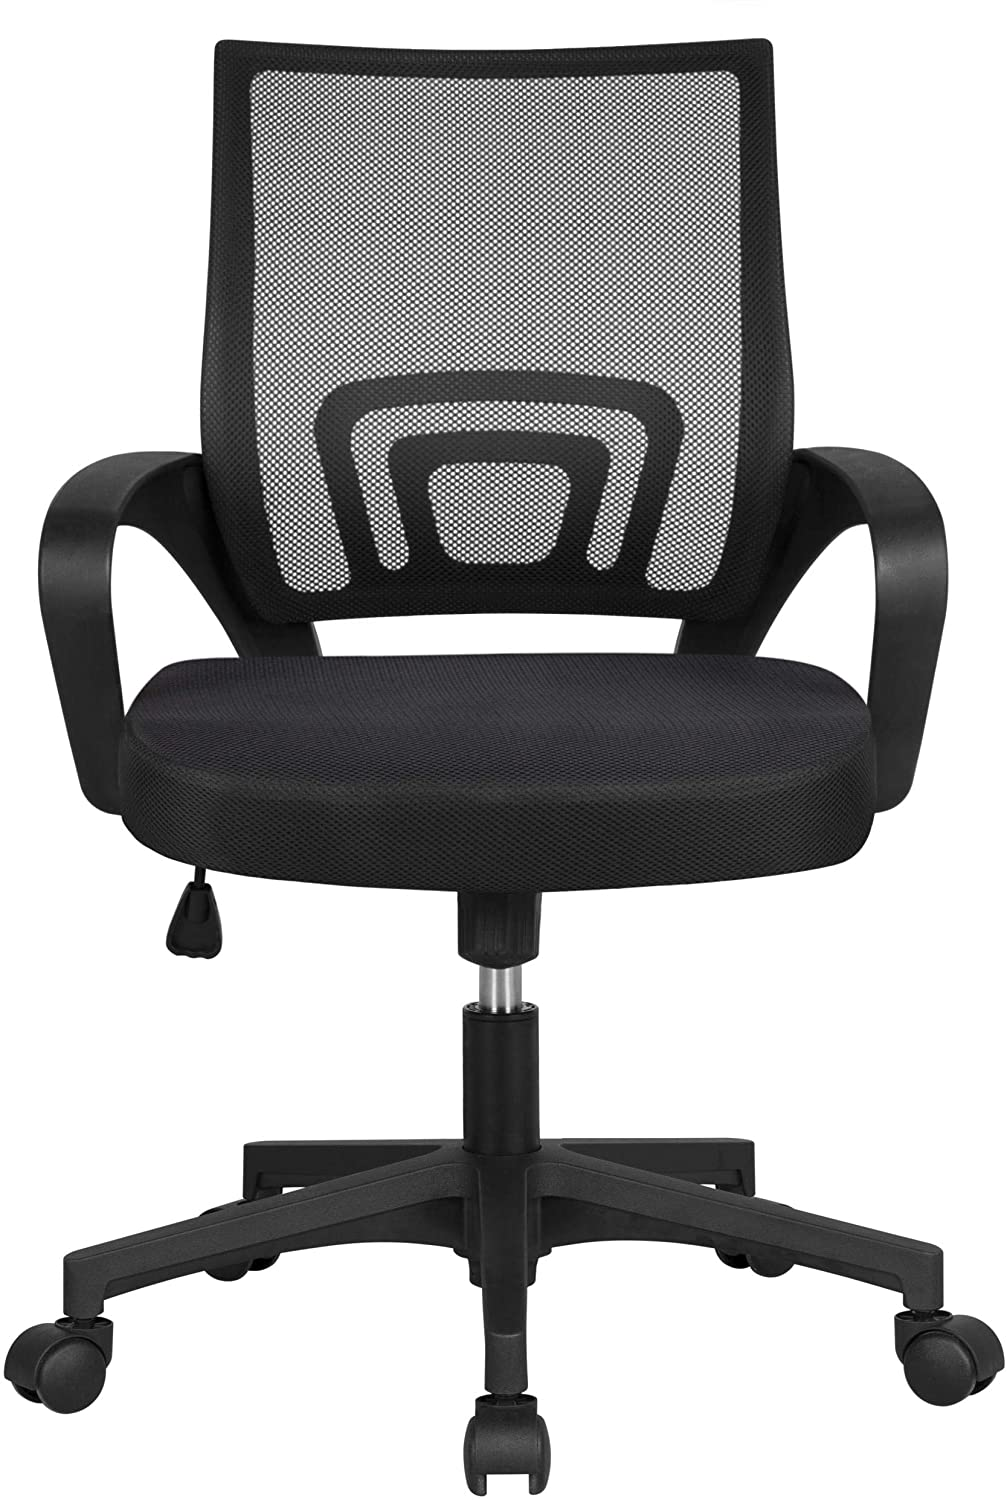 Yaheetech Lumber supportive Office Chair